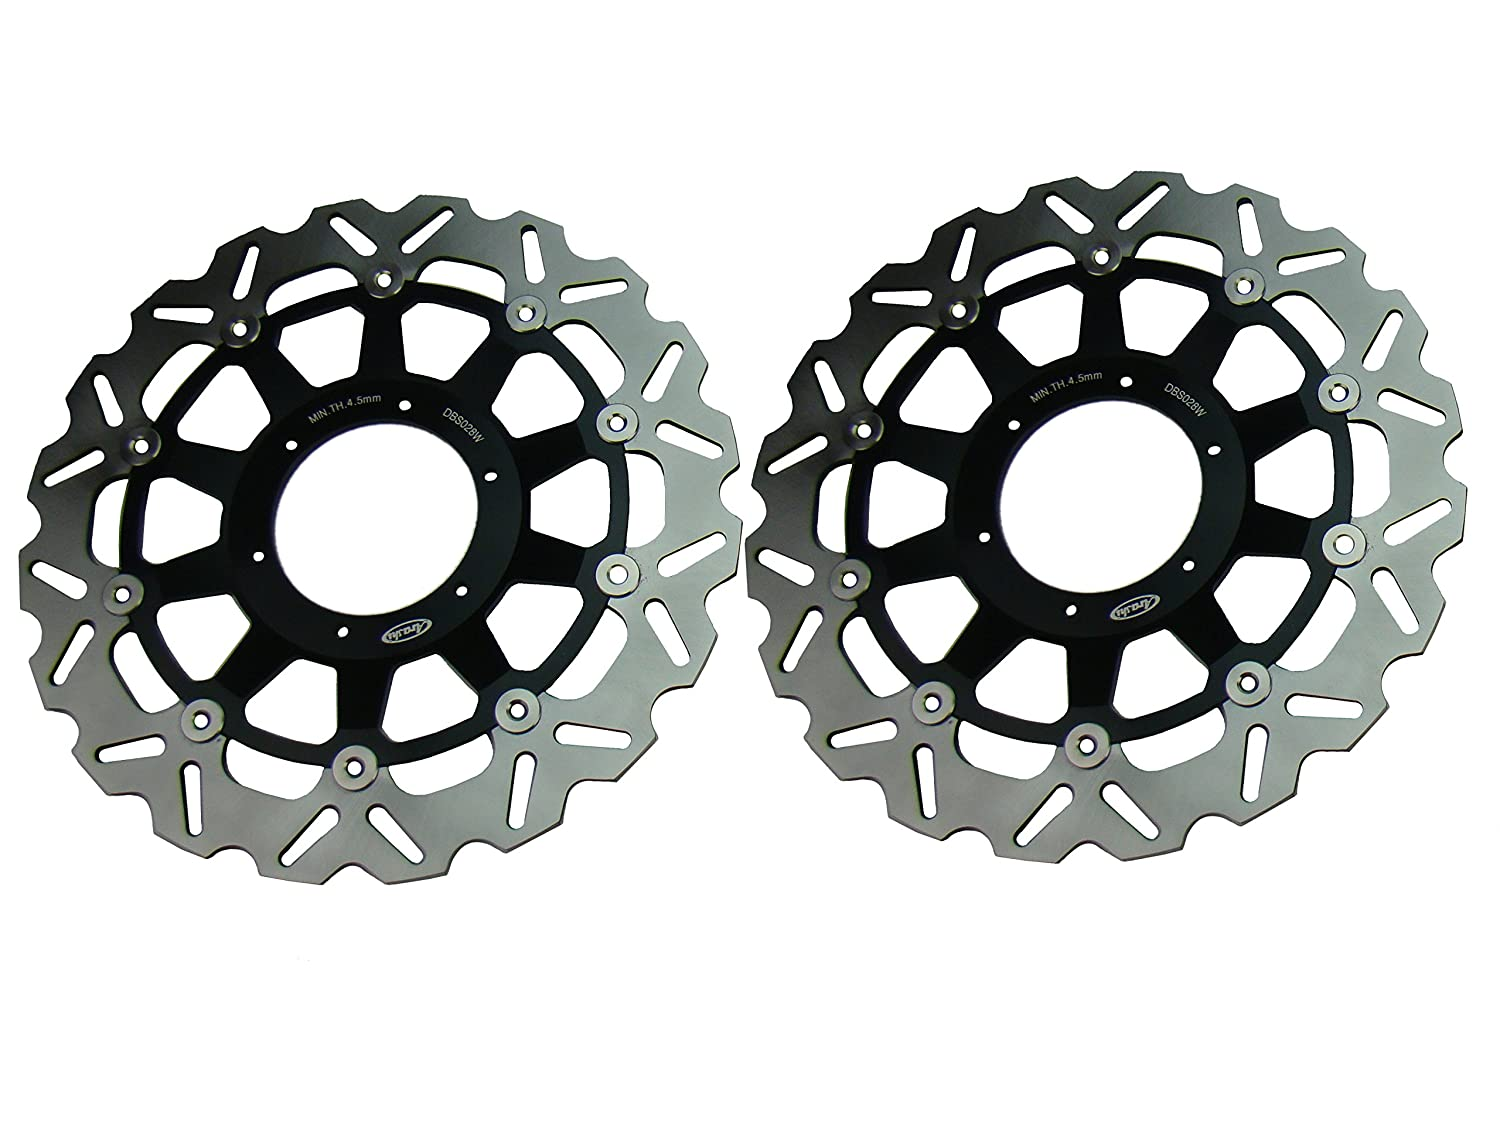 GZYF New Front Brake Disc Rotor Rotors Fit Honda CBR 600 F4i 2001-2006 Black